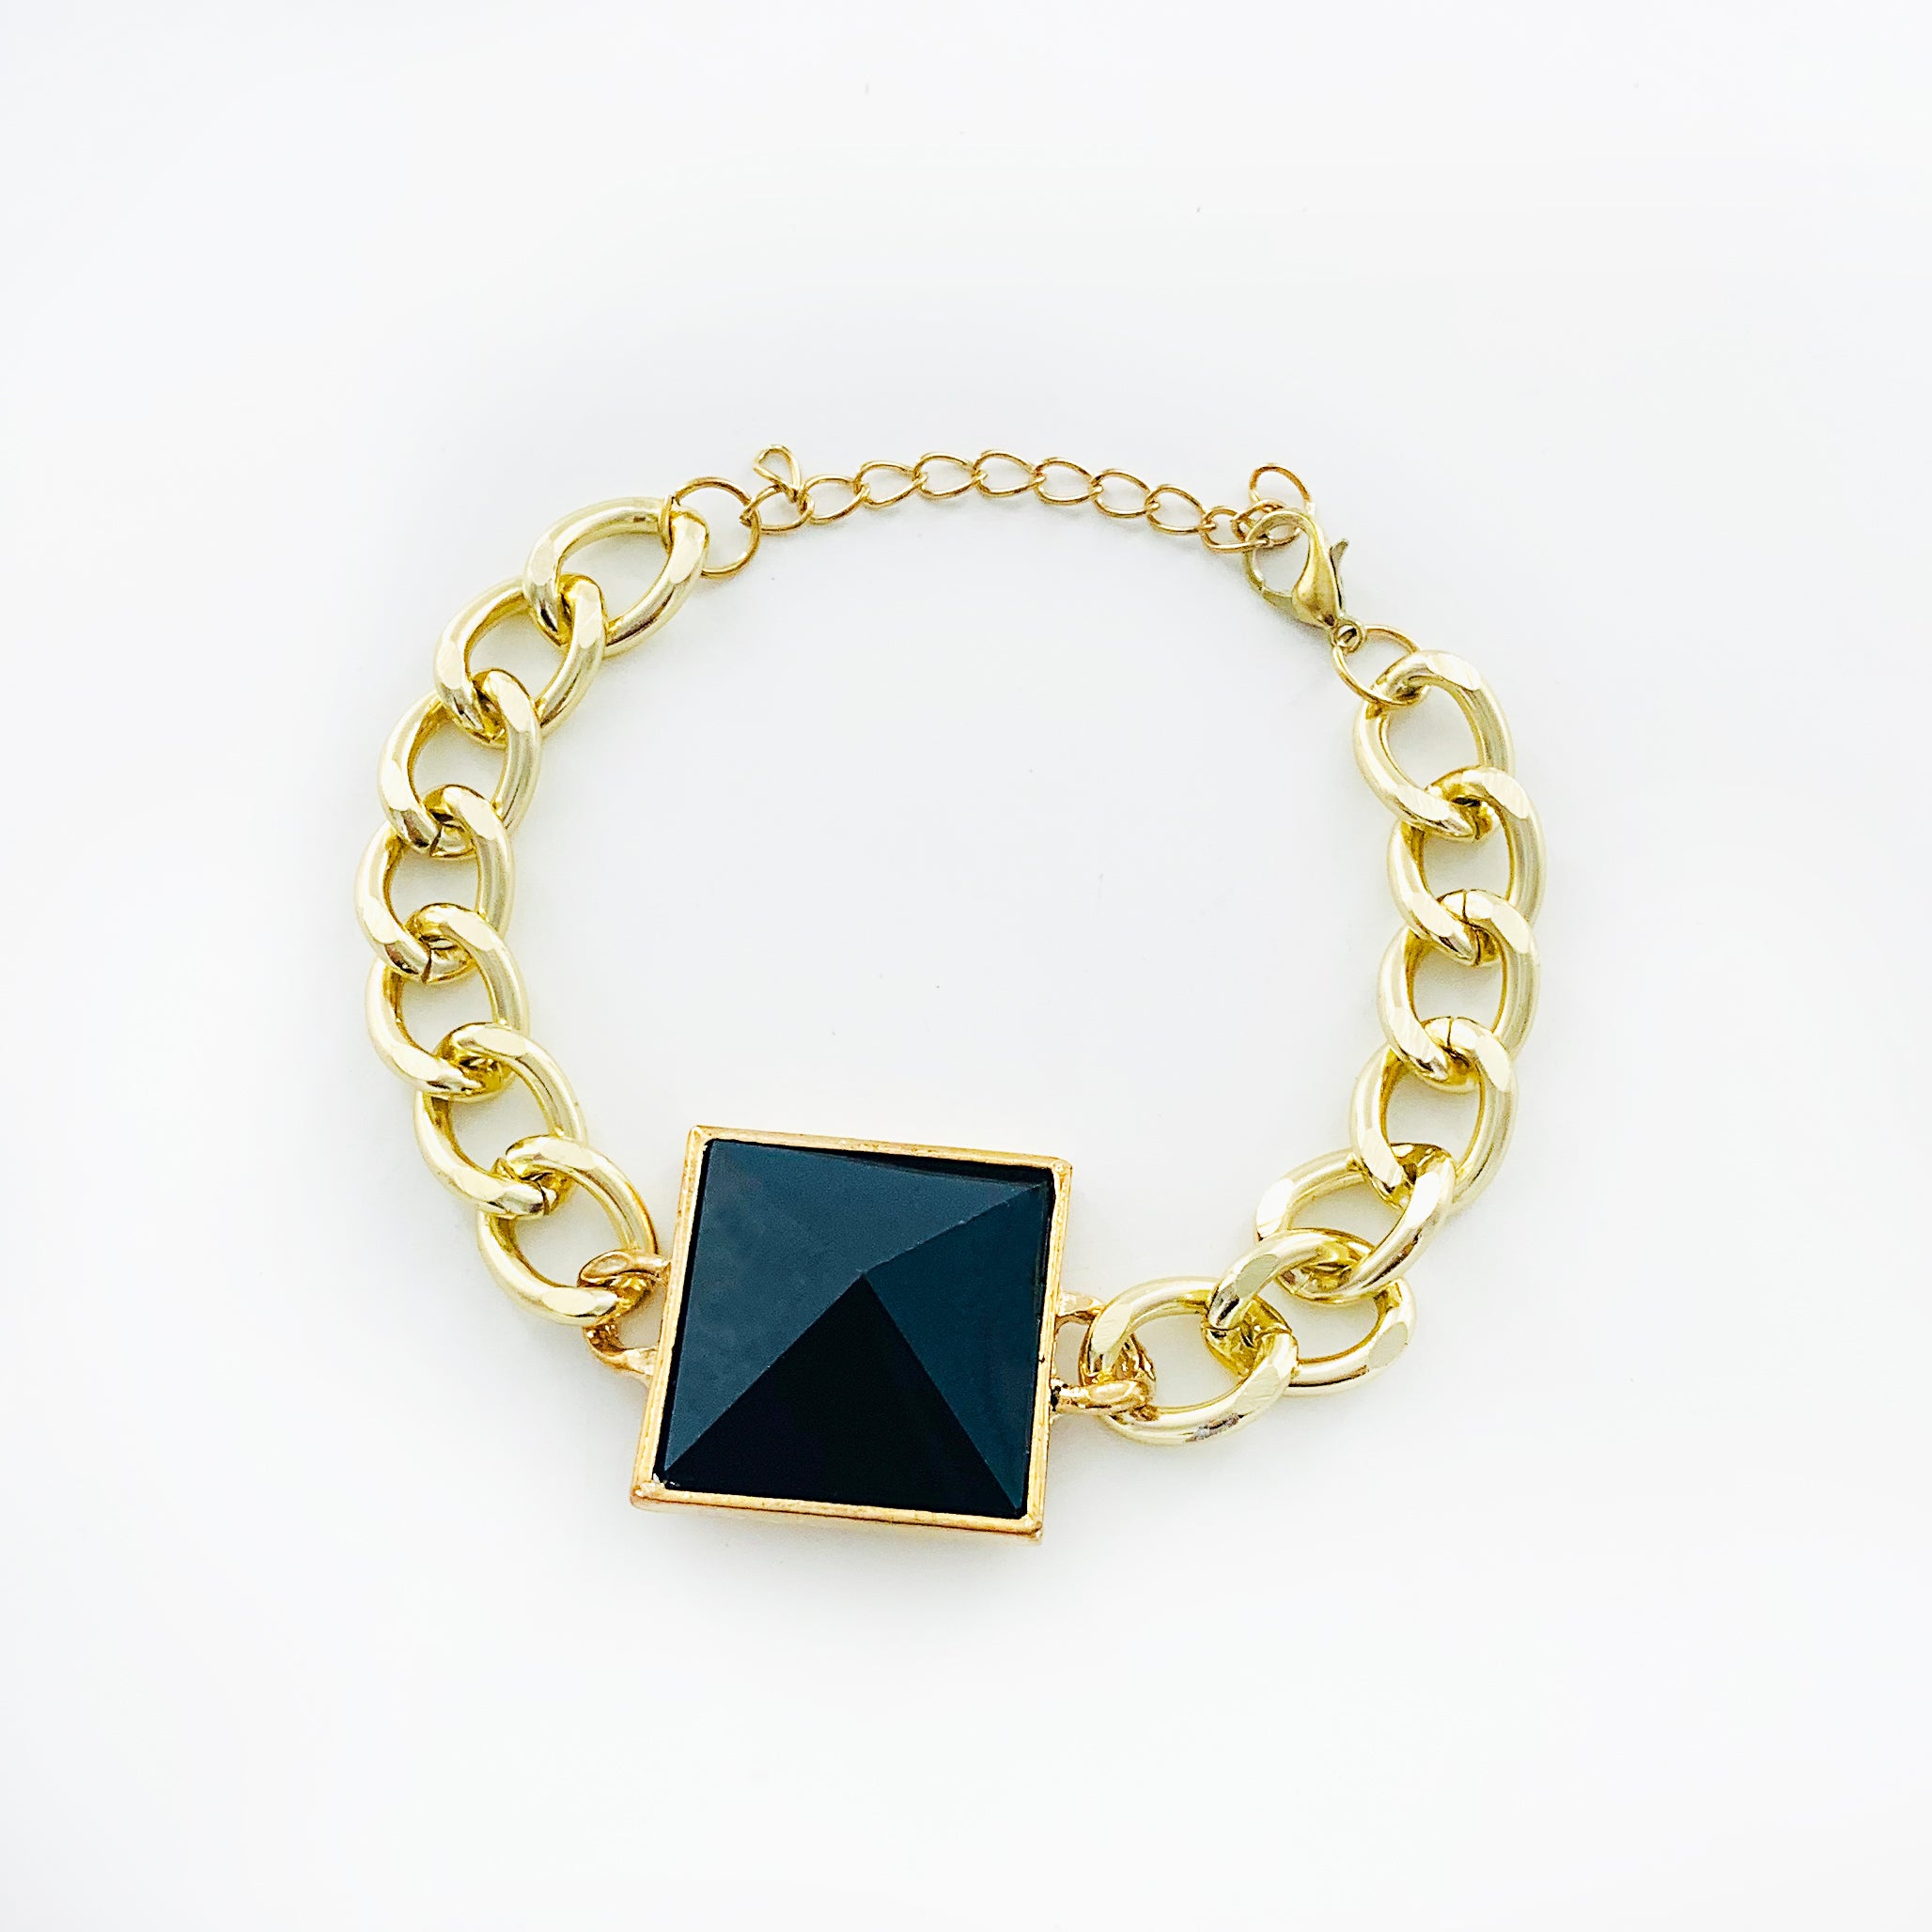 Gold chunky chain with large black faceted stone